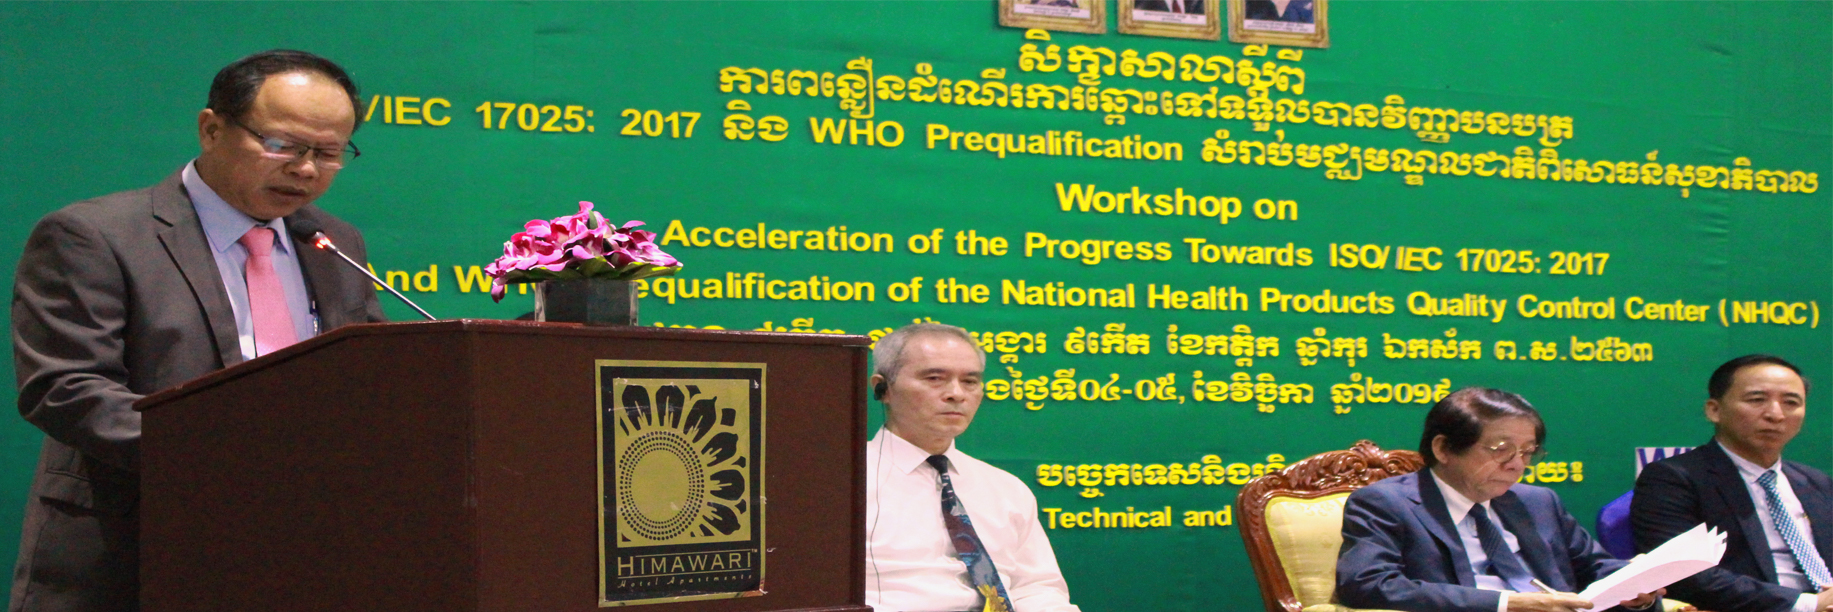 Workshop on acceleration of the Progress towards ISO/IEC 17025:2017